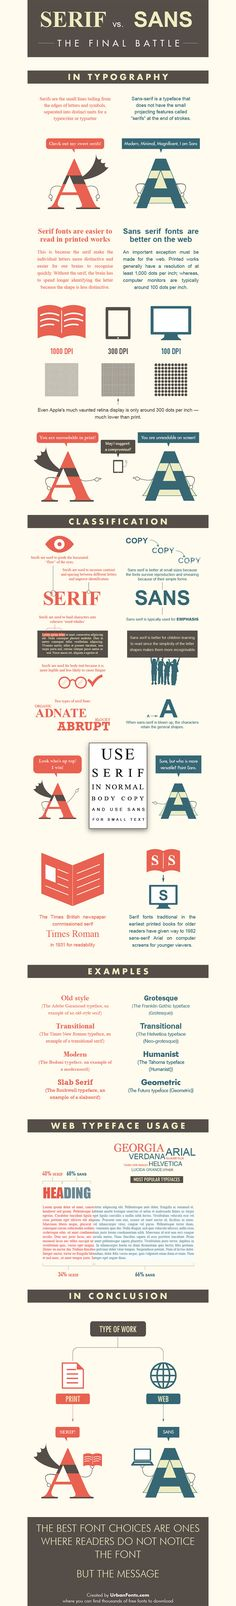 Serif VS Sand Typography showdown with stunning colours and illustrations